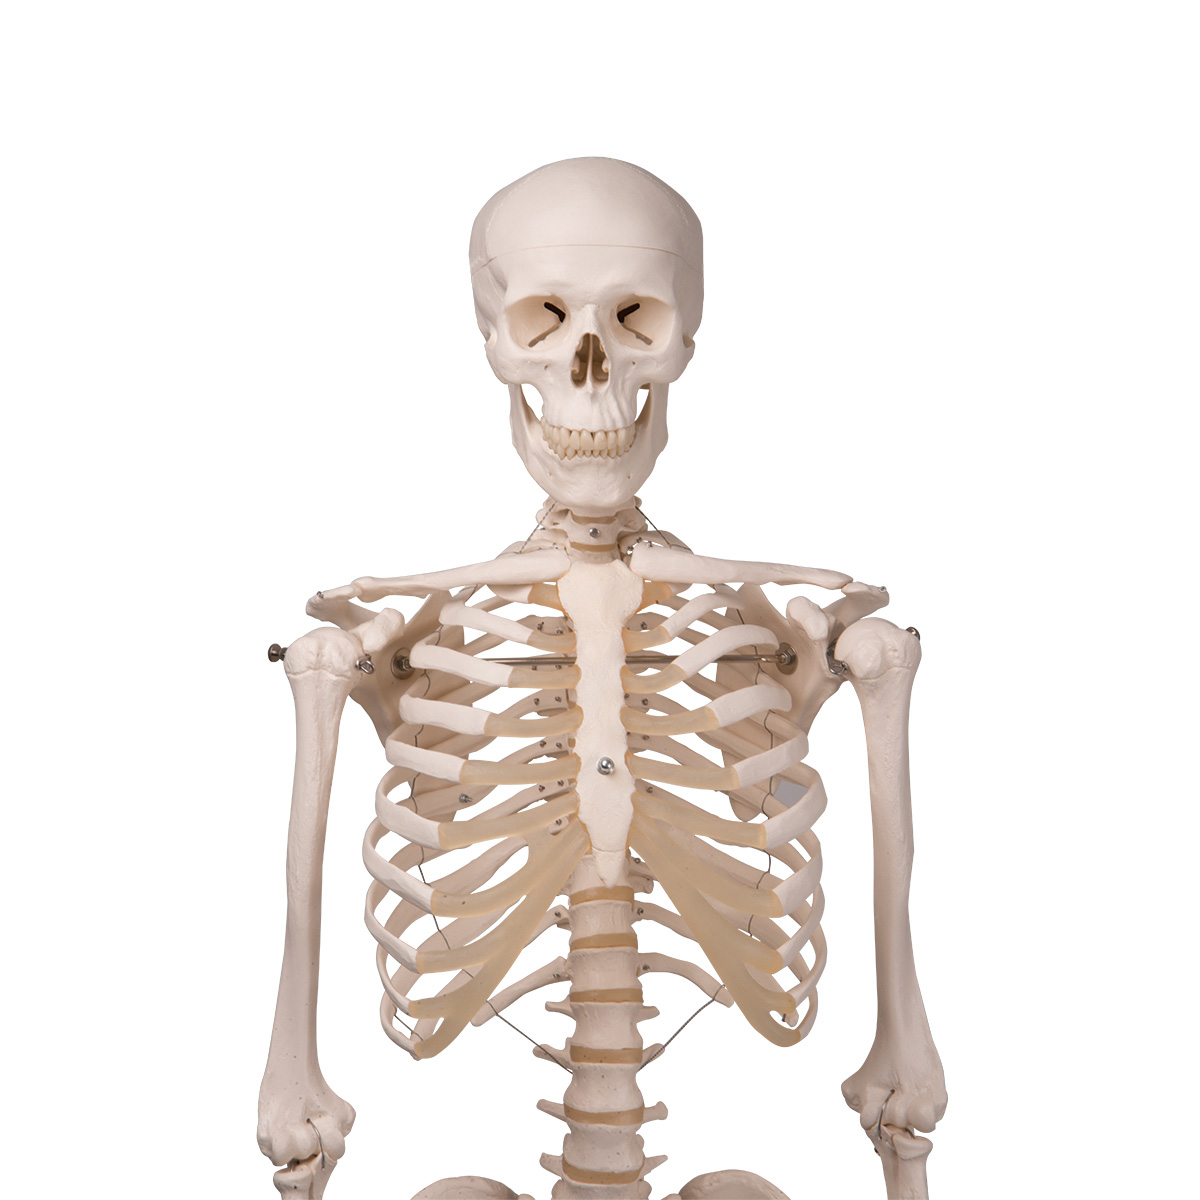 Human Skeleton Model | Human Anatomical Skeleton | Hanging ...